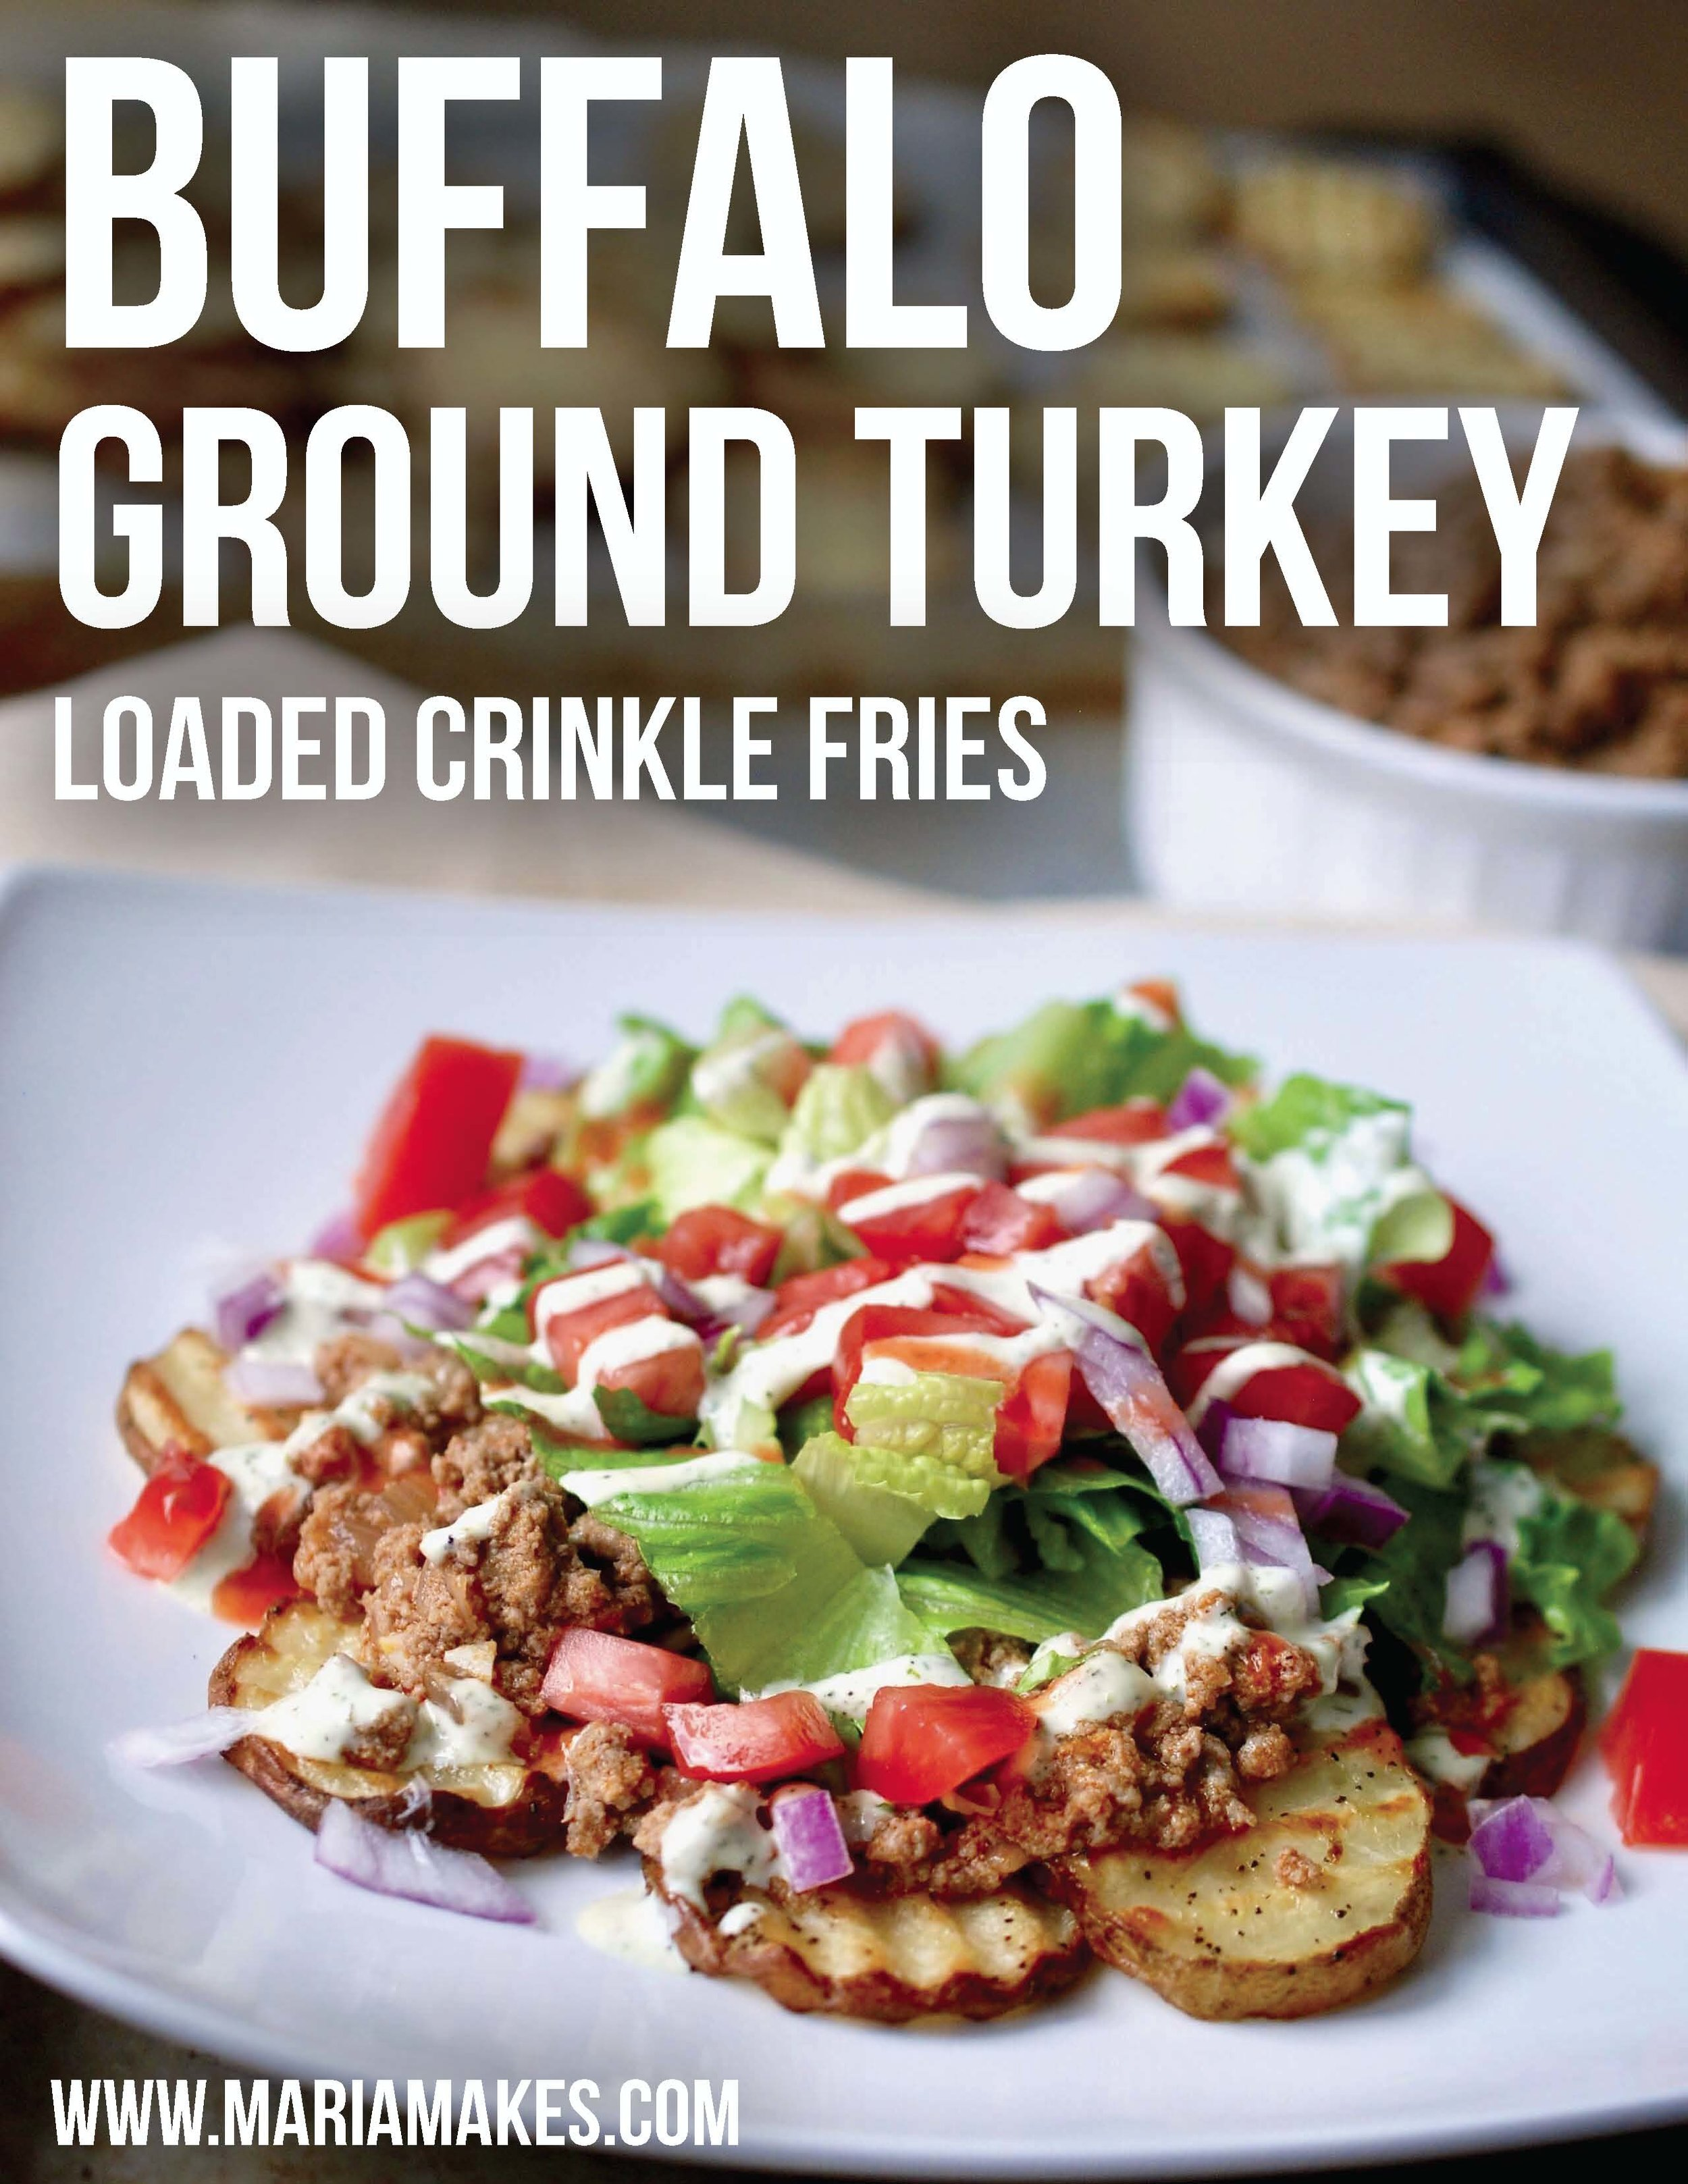 Buffalo Ground Turkey Loaded Crinkle Fries – Super easy buffalo ground turkey served over crispy oven fries with all the fixin's! Don't forget the Red Hot and ranch!. #whole30 #paleo #buffalo